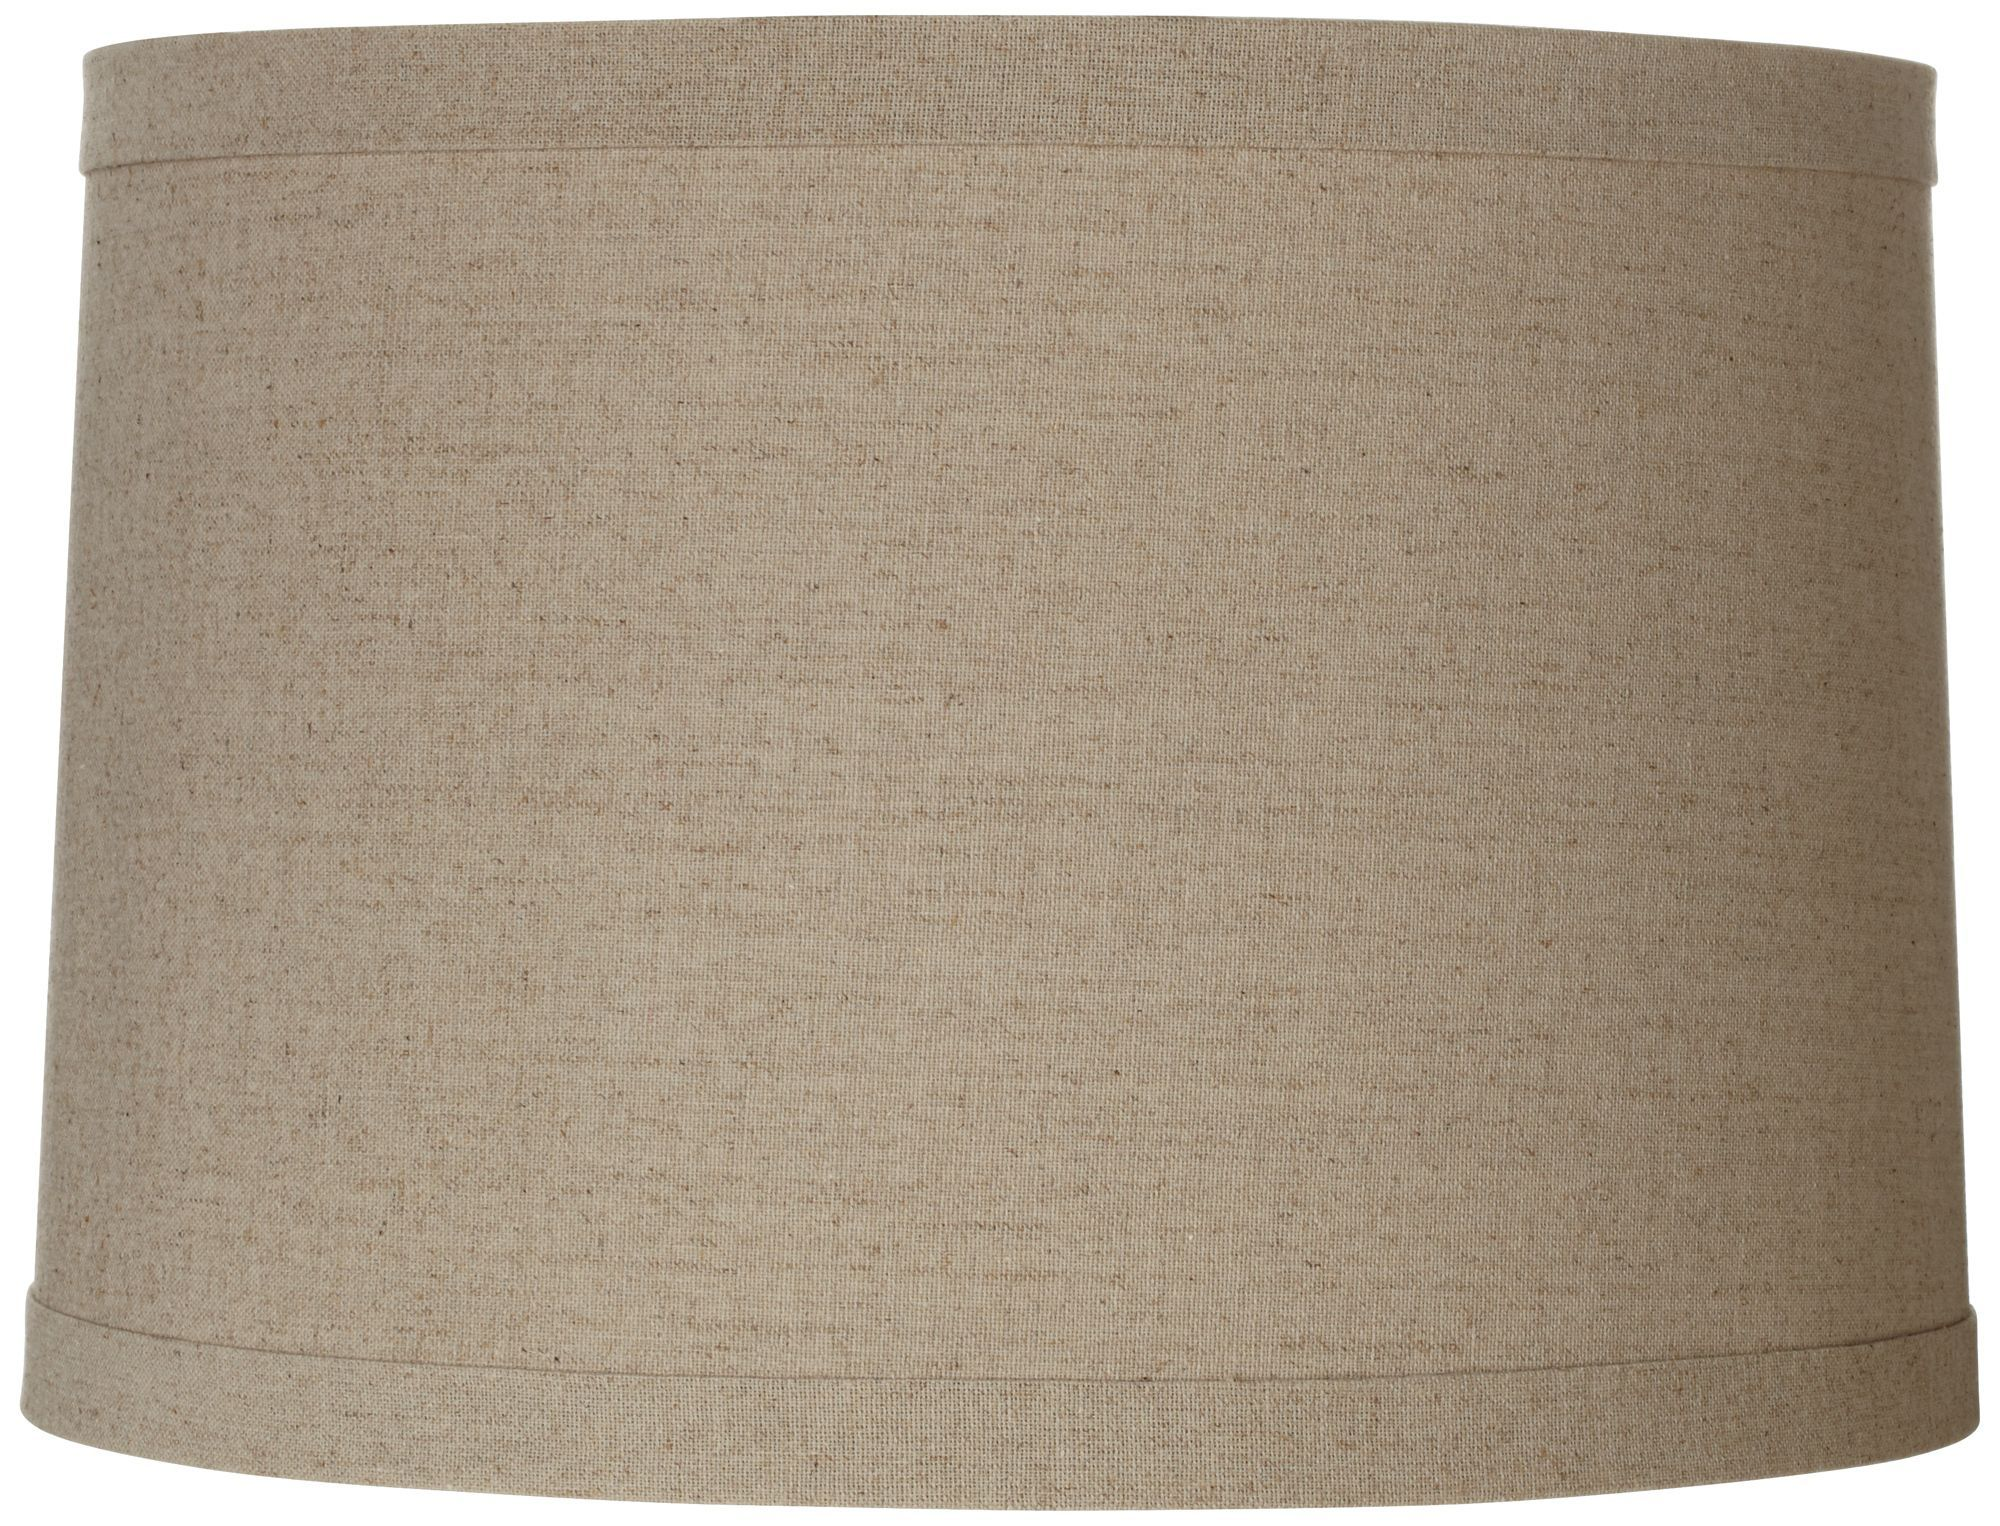 Springcrest Natural Linen 11-Inches-H Taupe Lamp Shade ...